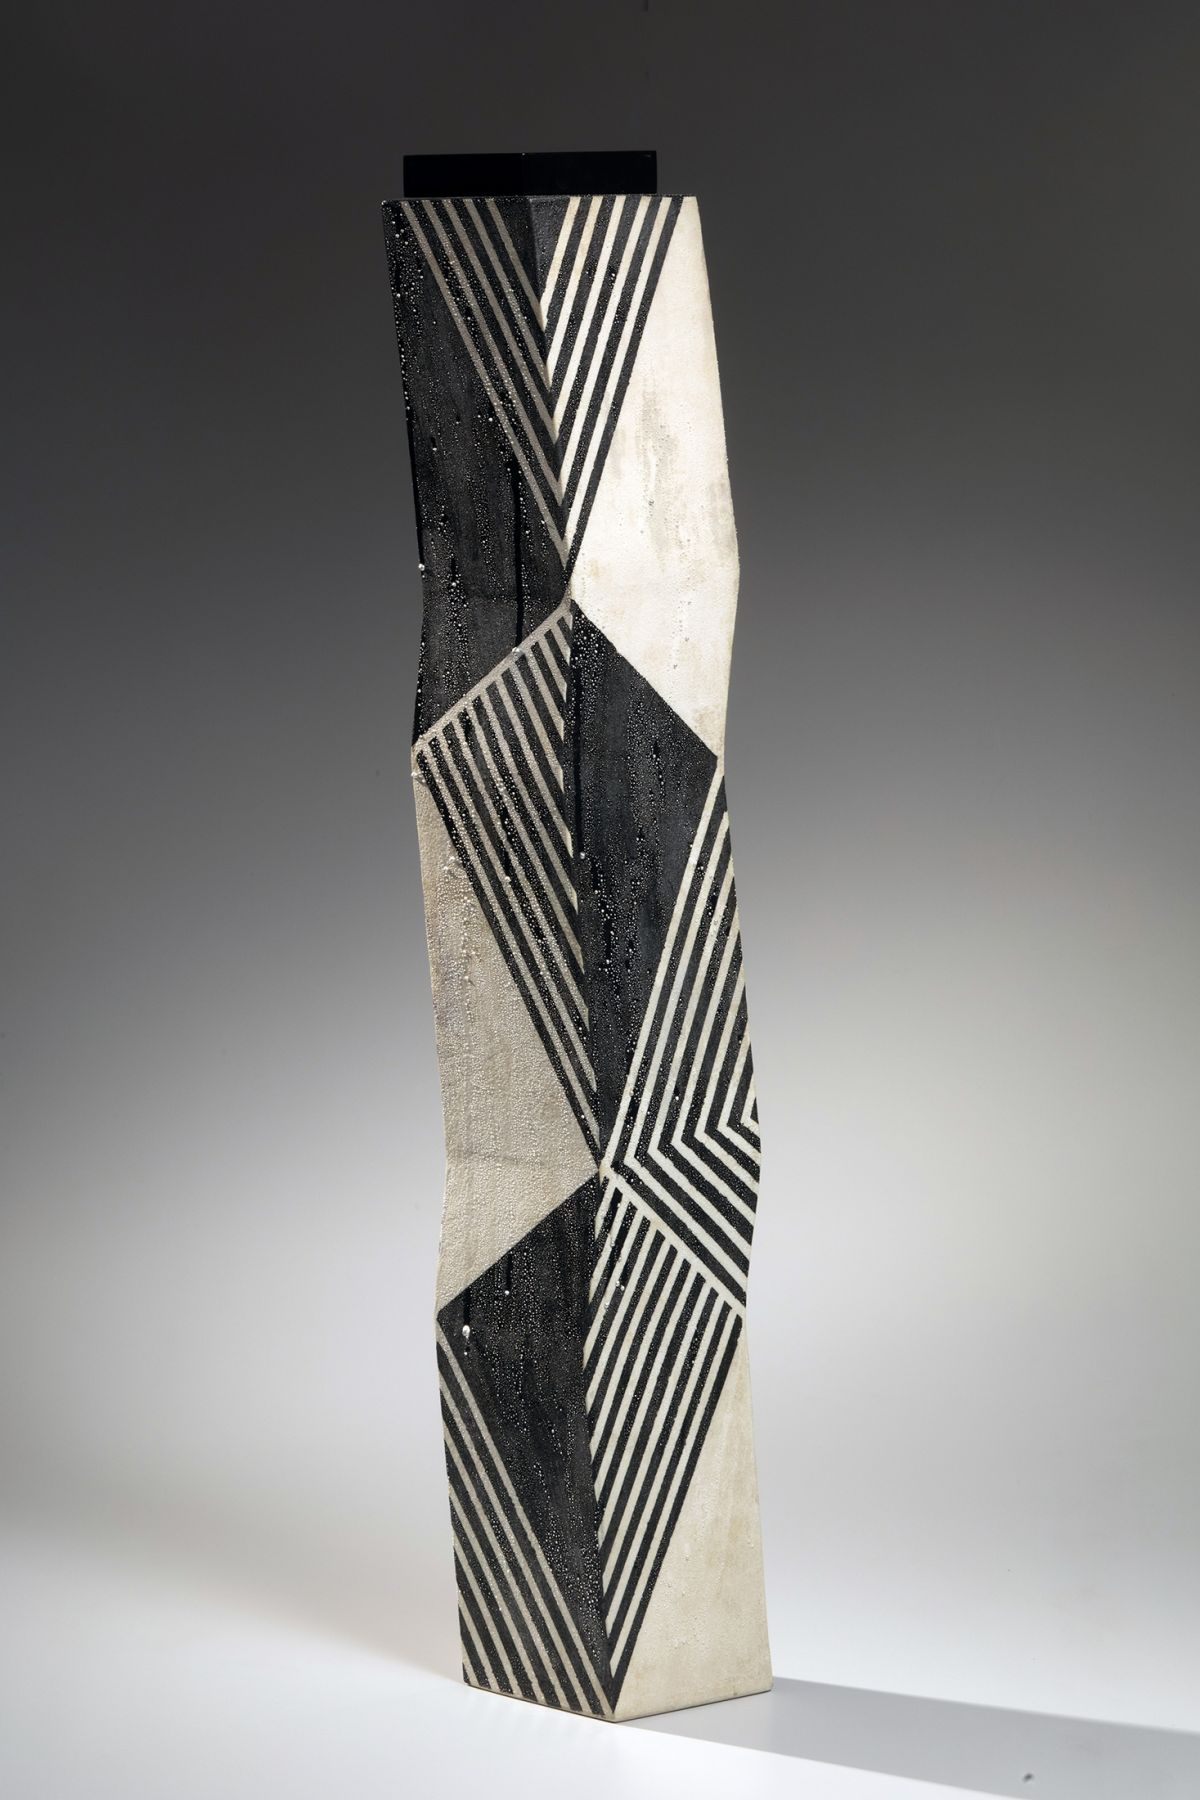 featured object - kondo zigzag